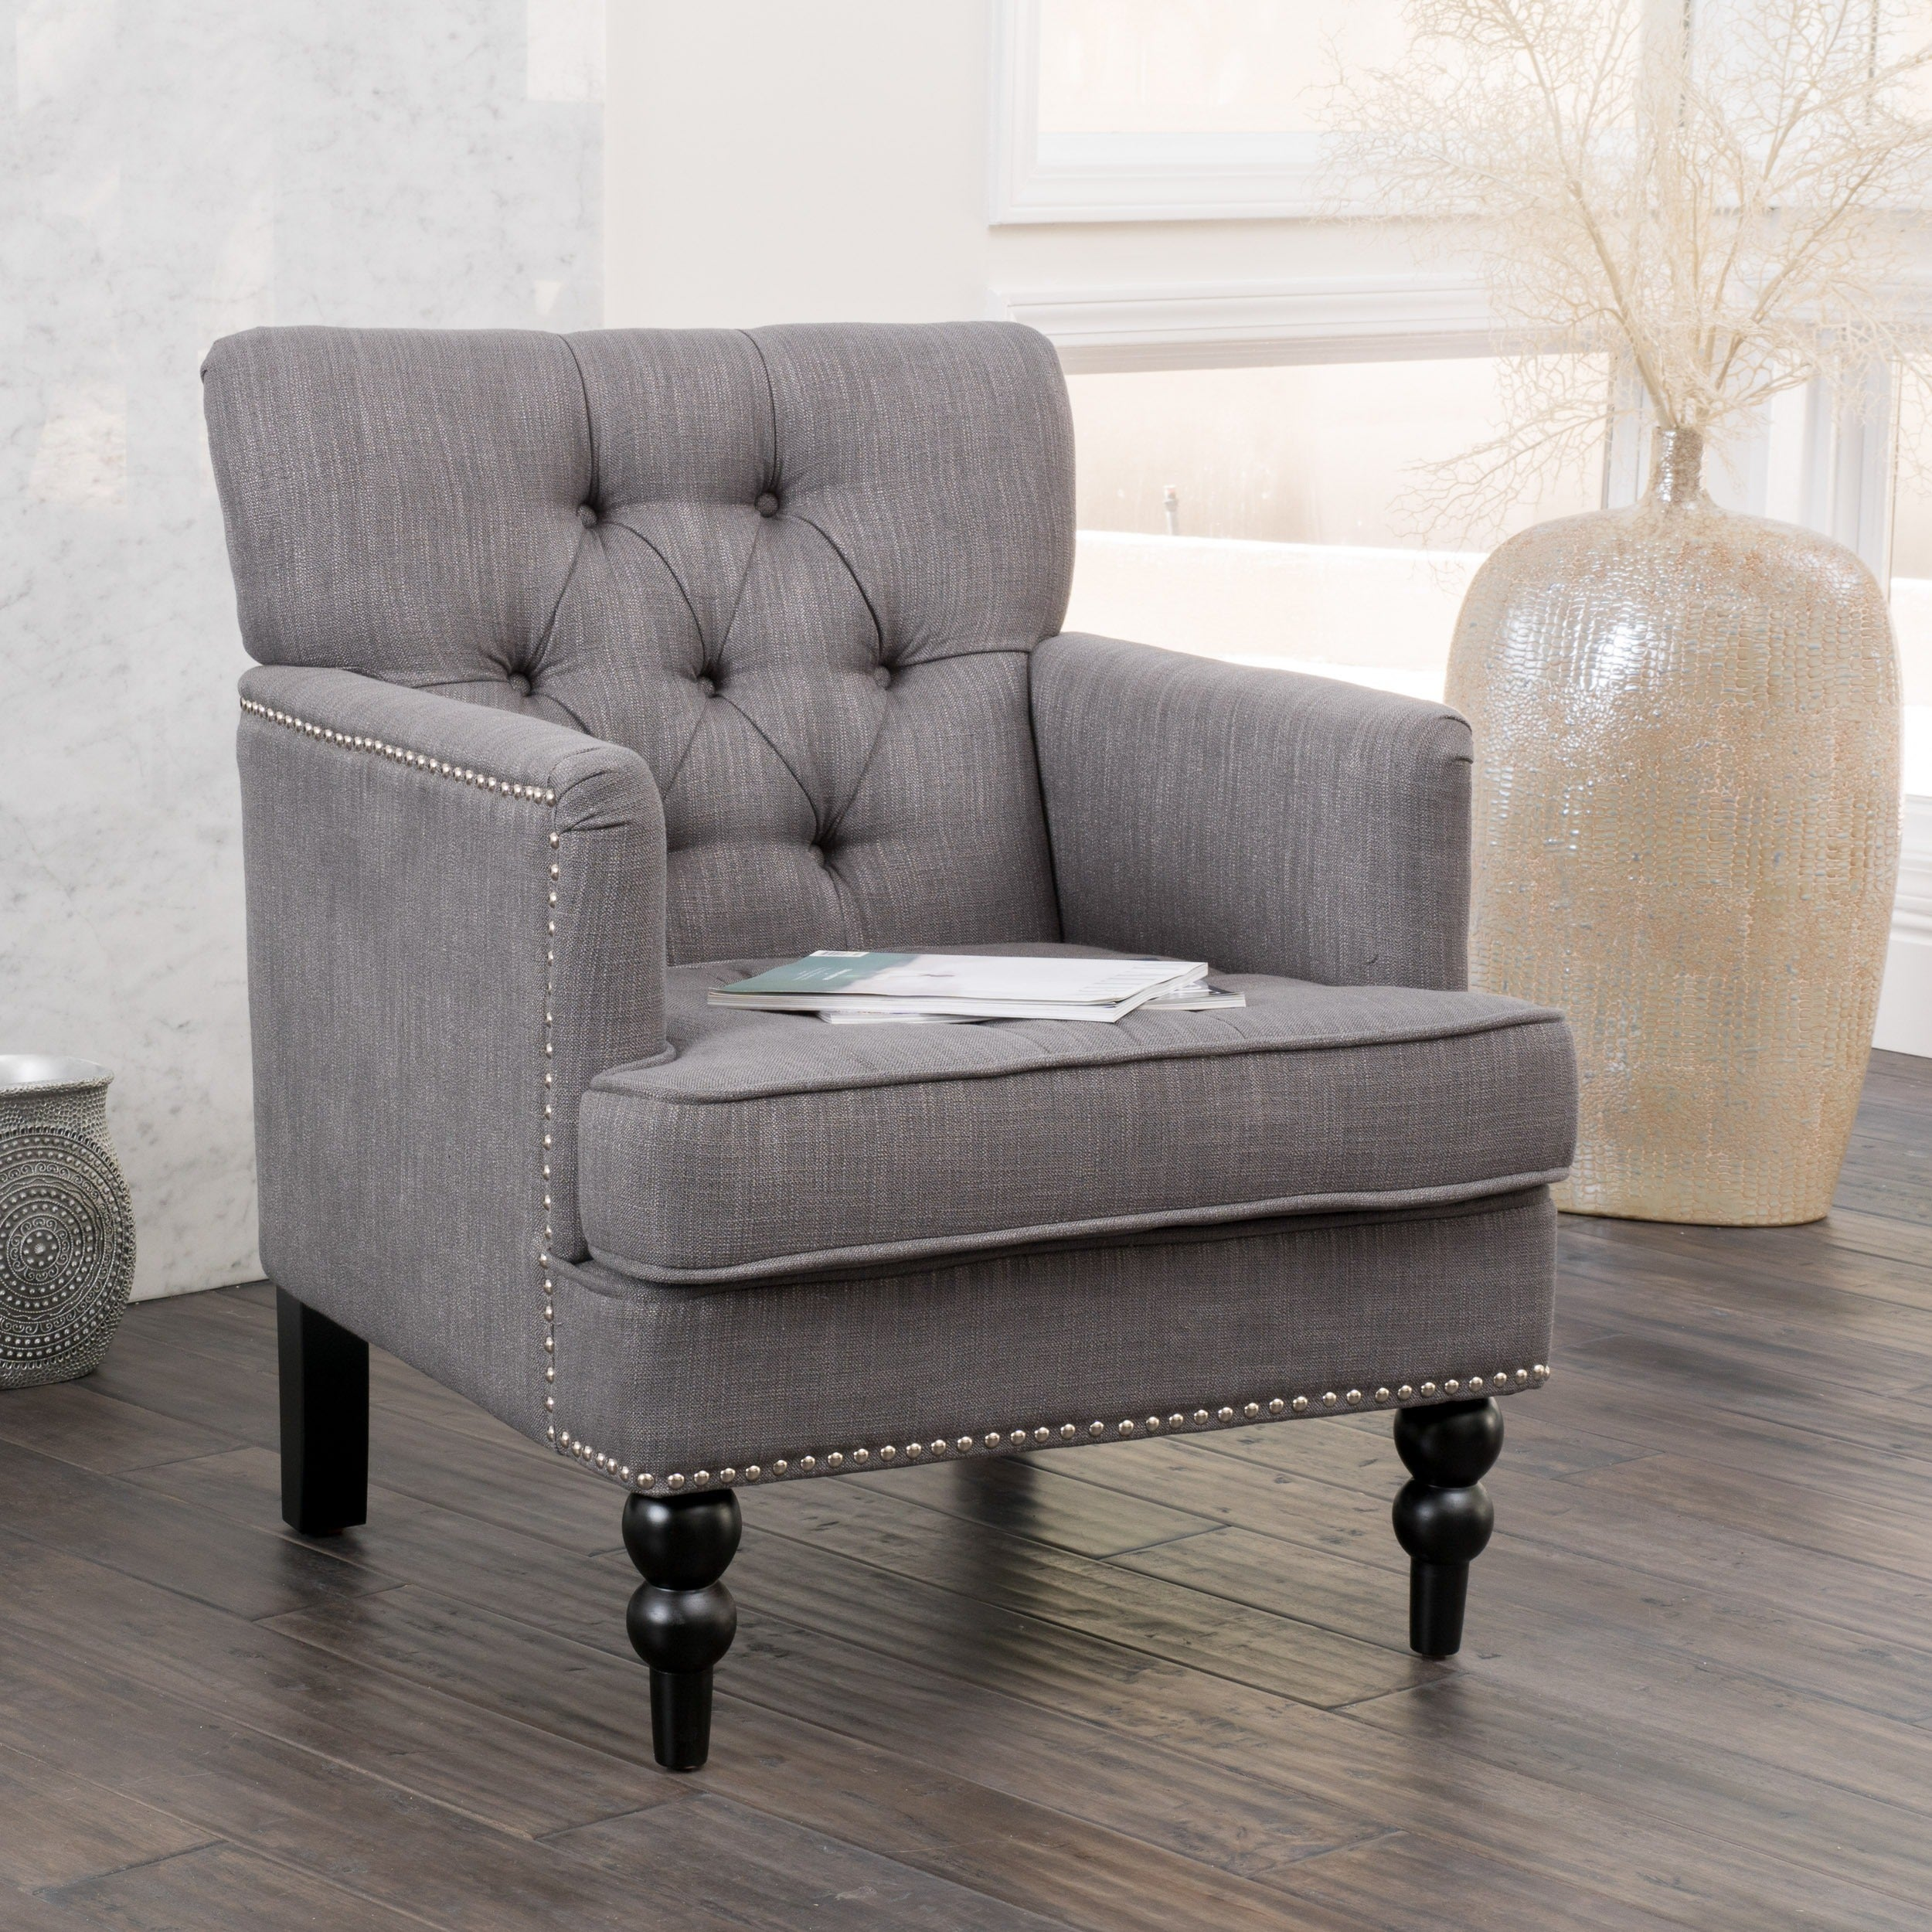 Furniture Overstock Com: Christopher Knight Home Malone Charcoal Grey Club Chair